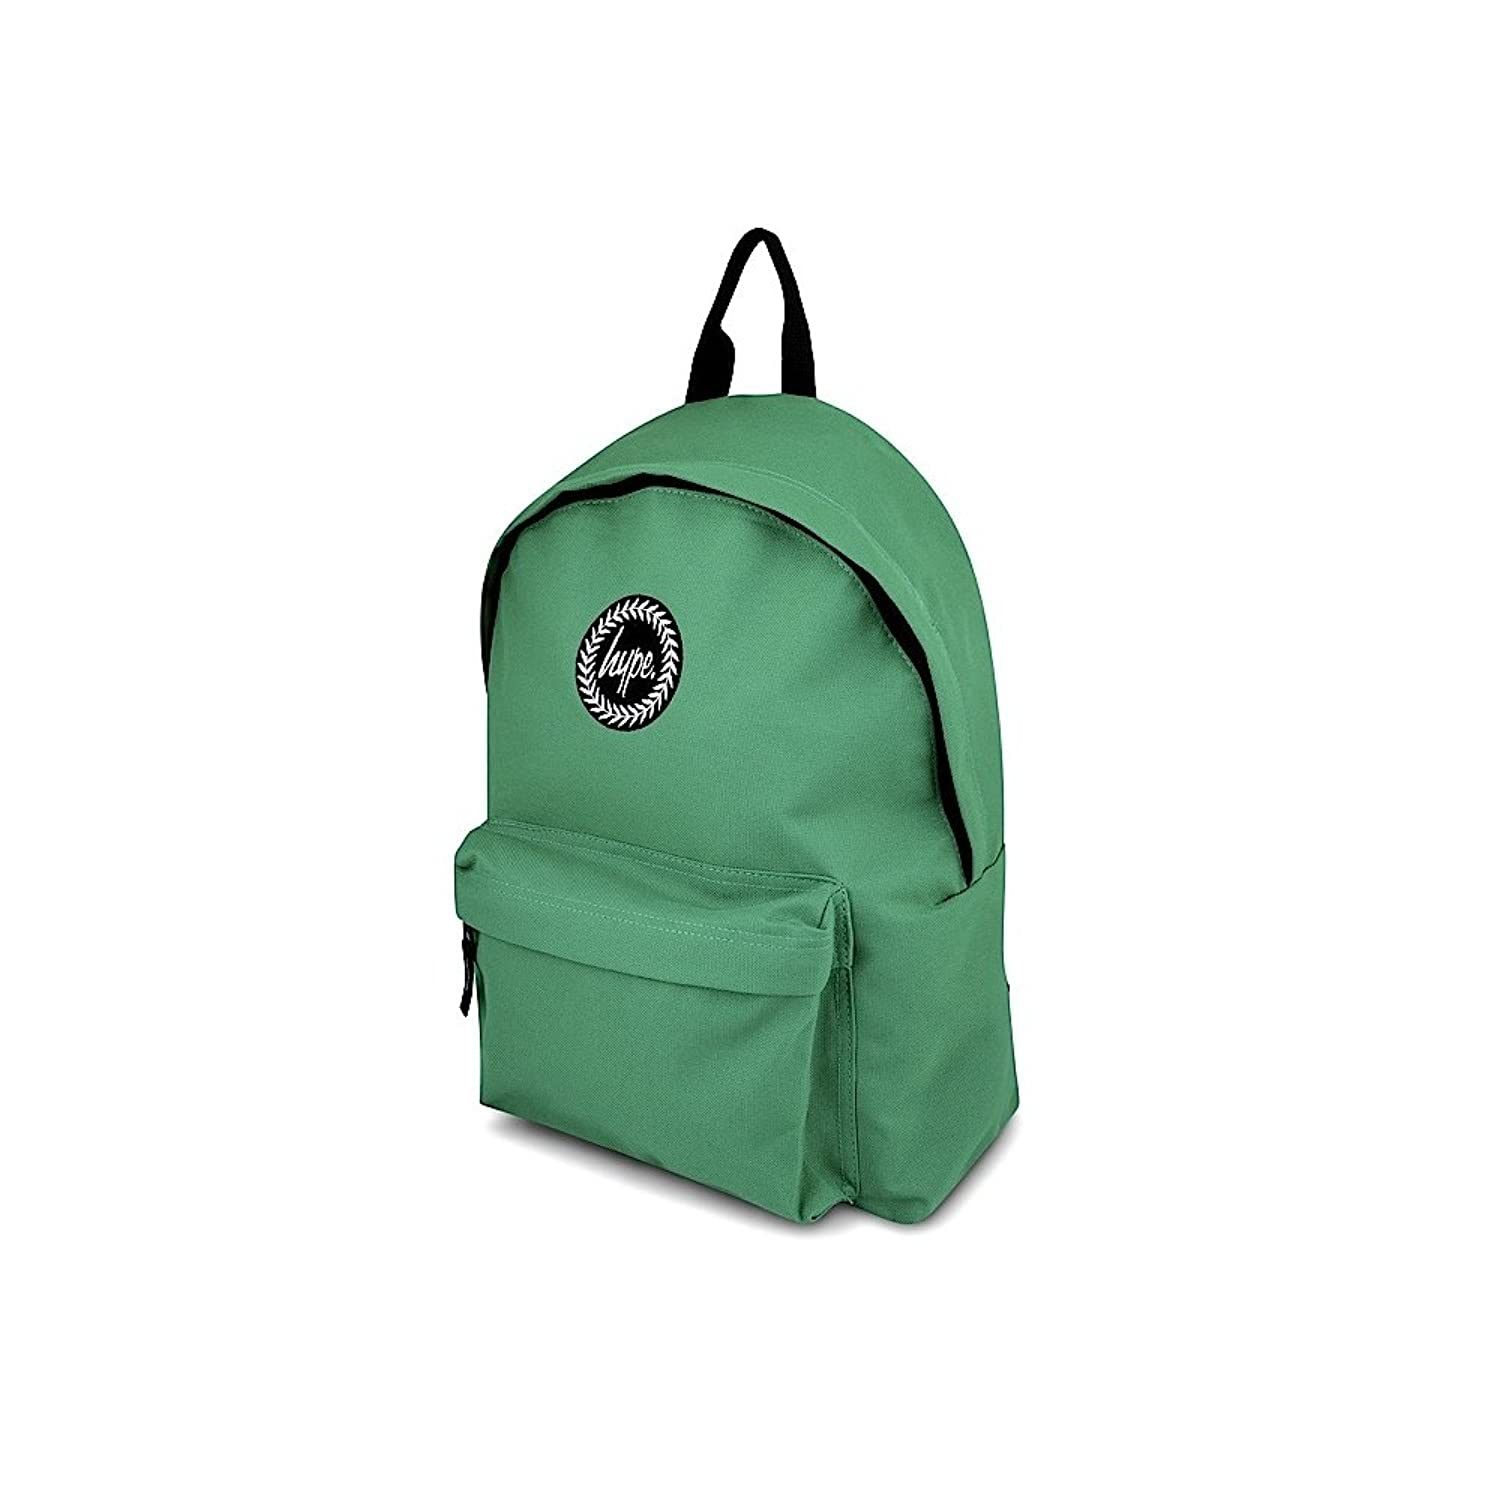 HYPE Plain Backpack - Emerald Green